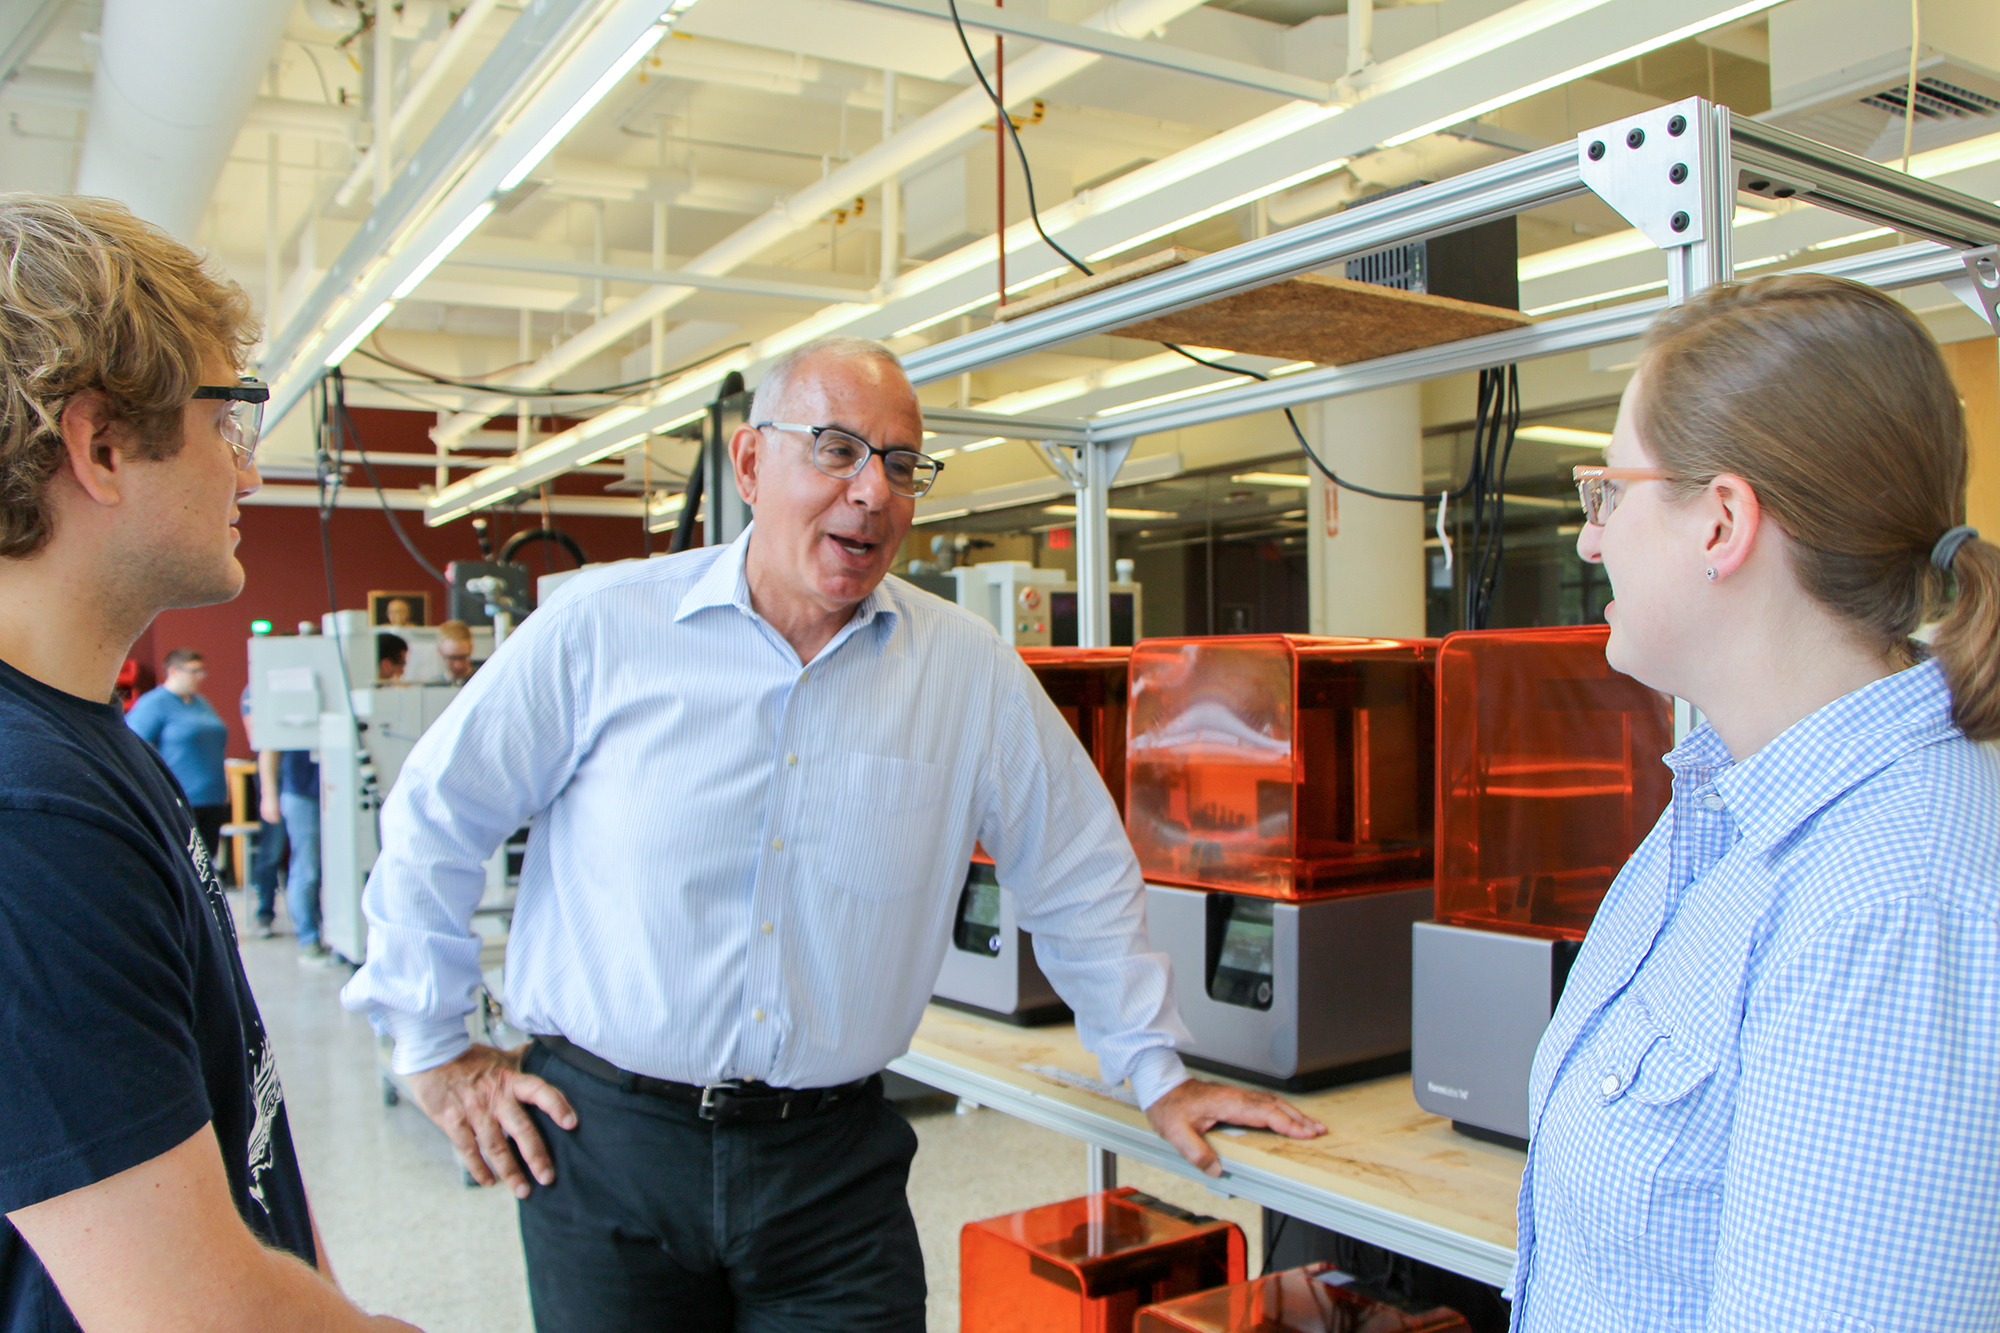 Dr. Fine and Mogenson talk in Boston University's EPIC lab in front of Form 2 3D printers.